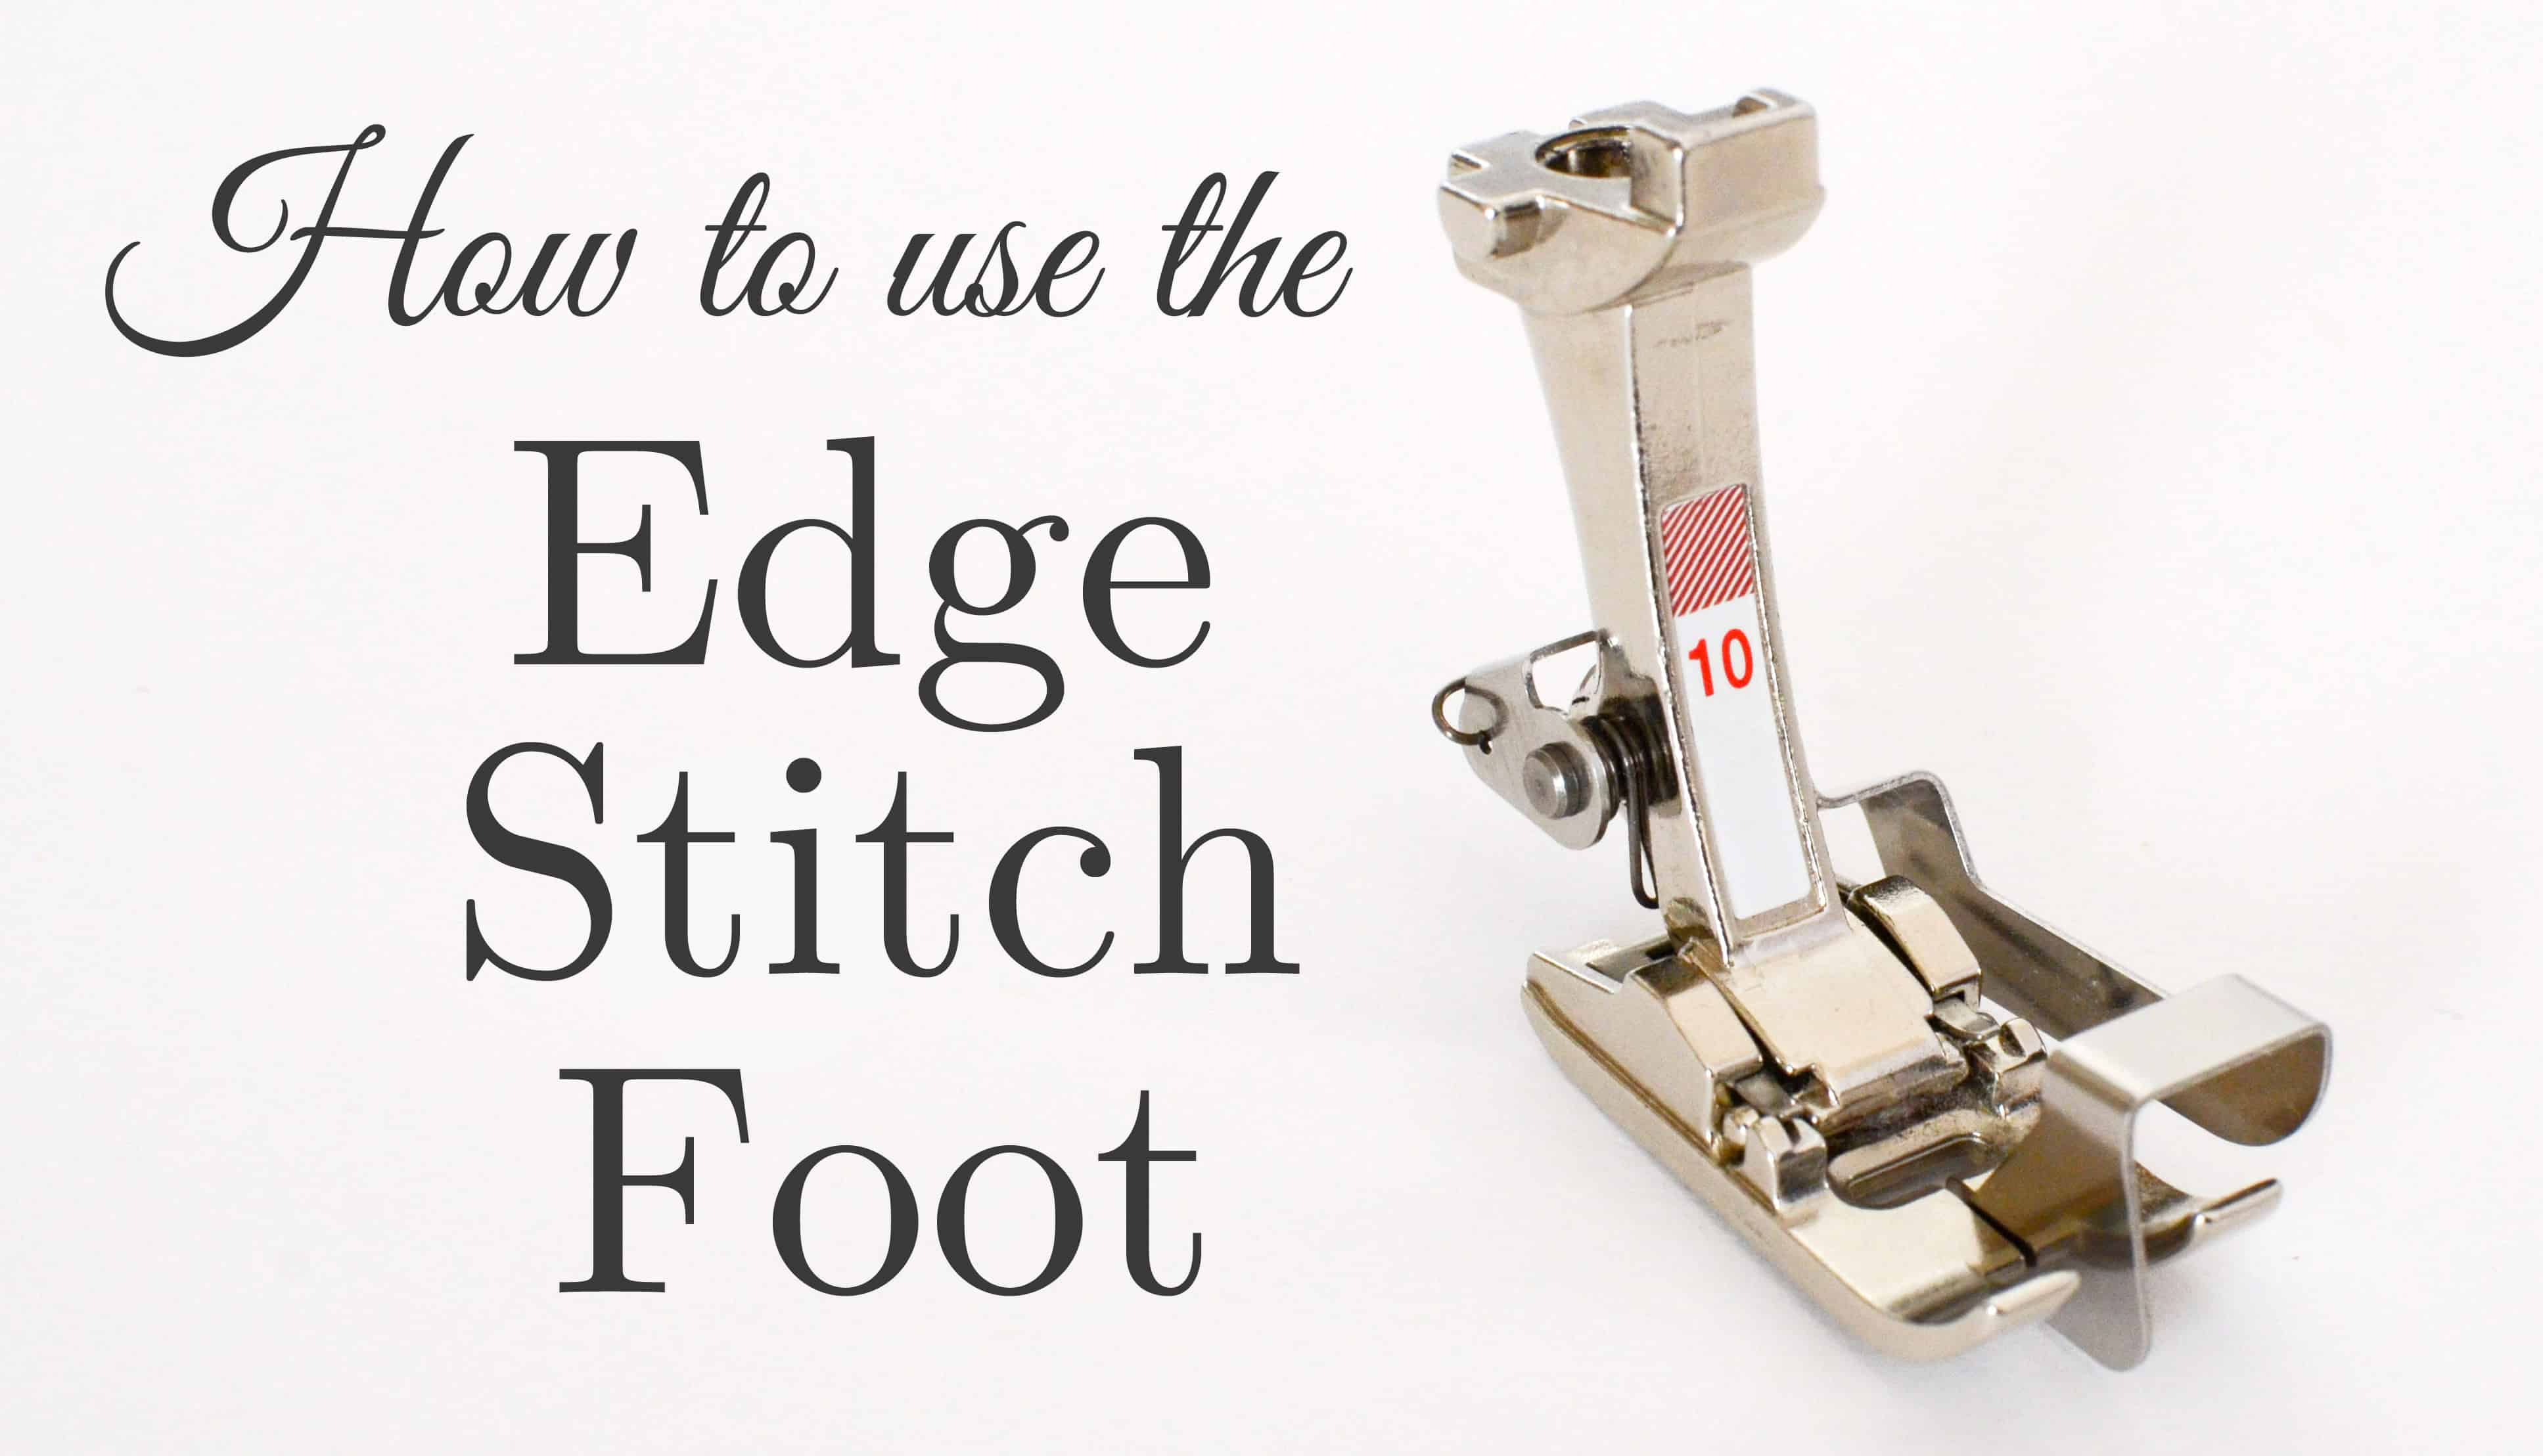 Ever wonder how sewists get perfect topstitching. The secret is to use an Edge Stitch Foot. Learn all about the secrets to better sewing with this amazing presser foot.